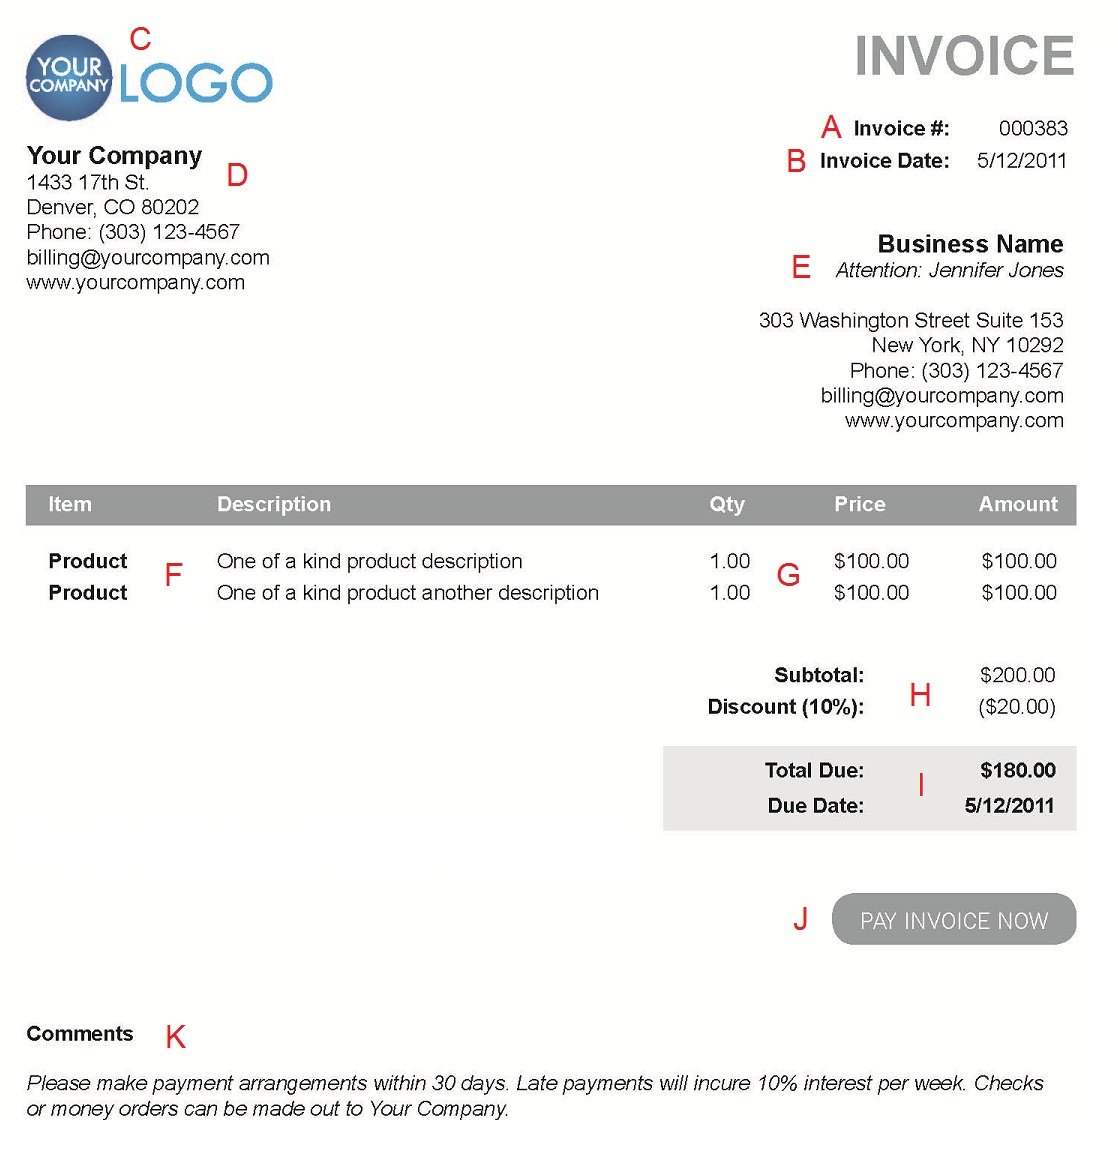 Coolmathgamesus  Winsome The  Different Sections Of An Electronic Payment Invoice With Likable A  With Easy On The Eye Request Read Receipt Hotmail Also Receipt Routing In Jde In Addition Where To Buy Receipts And Outlook Return Receipt As Well As Bluetooth Mobile Receipt Printer Additionally Irs Requirements For Receipts From Paysimplecom With Coolmathgamesus  Likable The  Different Sections Of An Electronic Payment Invoice With Easy On The Eye A  And Winsome Request Read Receipt Hotmail Also Receipt Routing In Jde In Addition Where To Buy Receipts From Paysimplecom